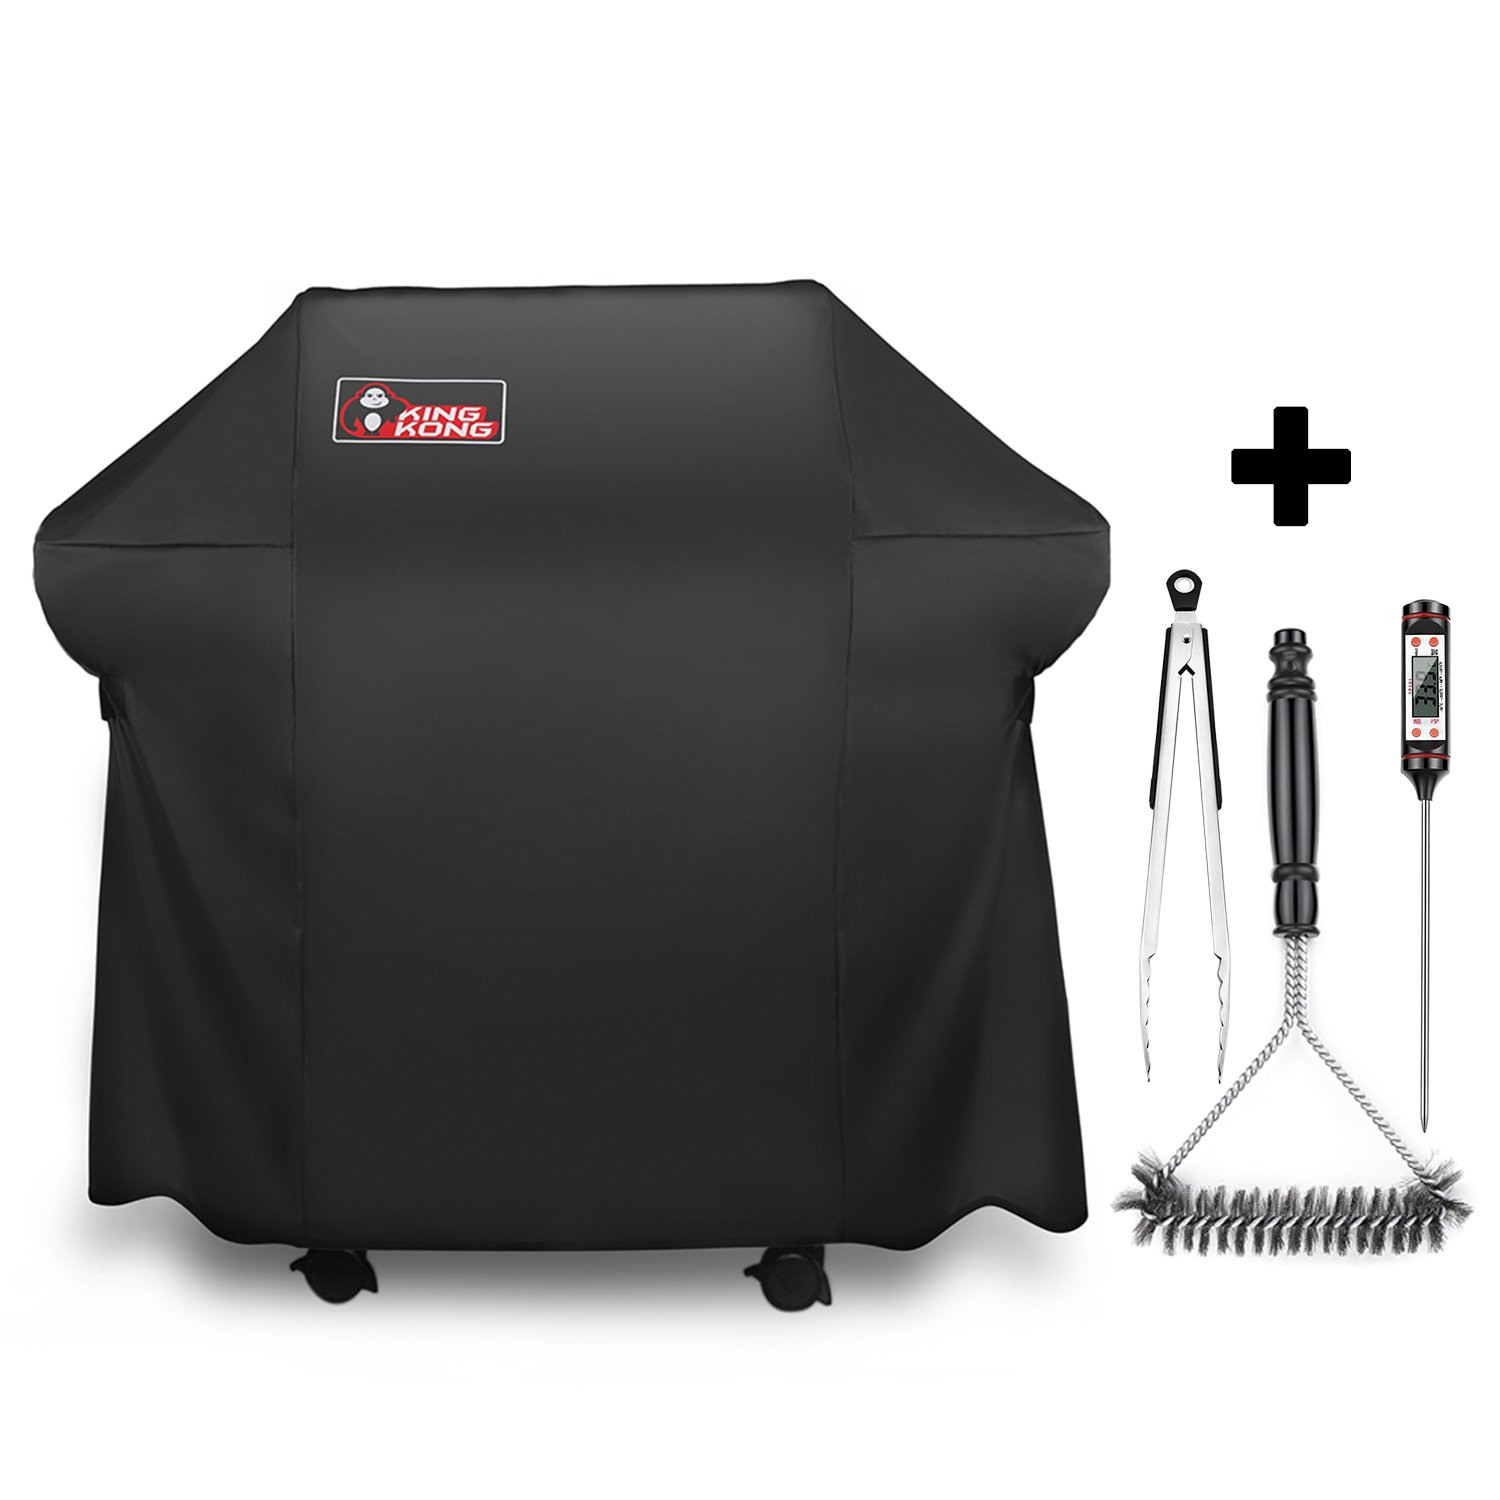 Kingkong Grill Cover 7106Cover for Weber Spirit 200 and 300 Series Gas Grill Including Grill Brush,Tongs and Thermometer